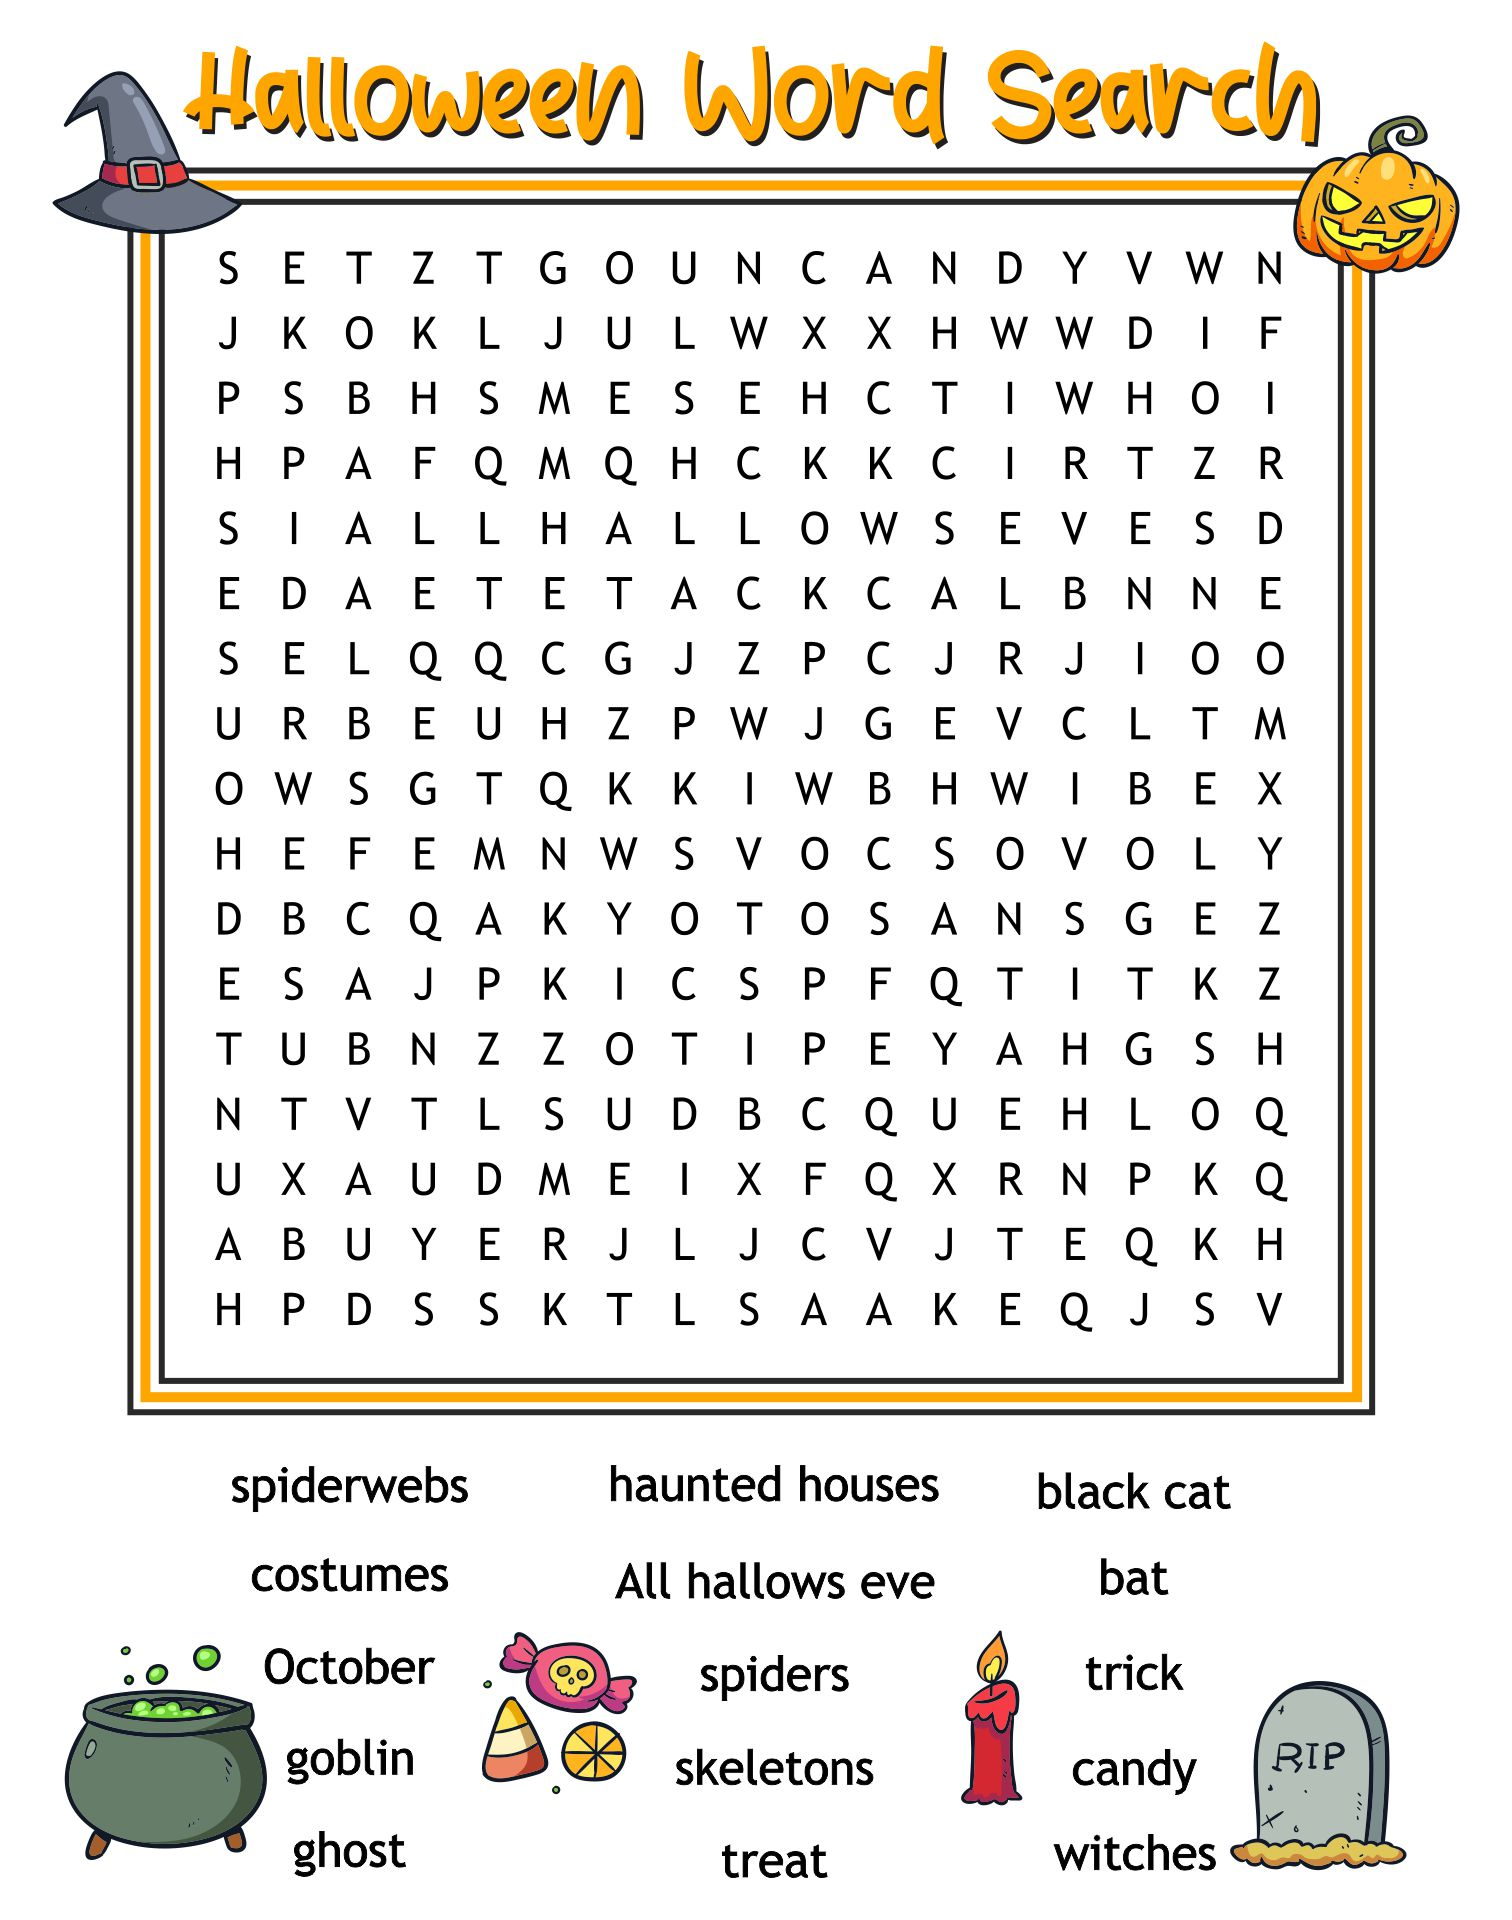 Happy Halloween Word Search Puzzle